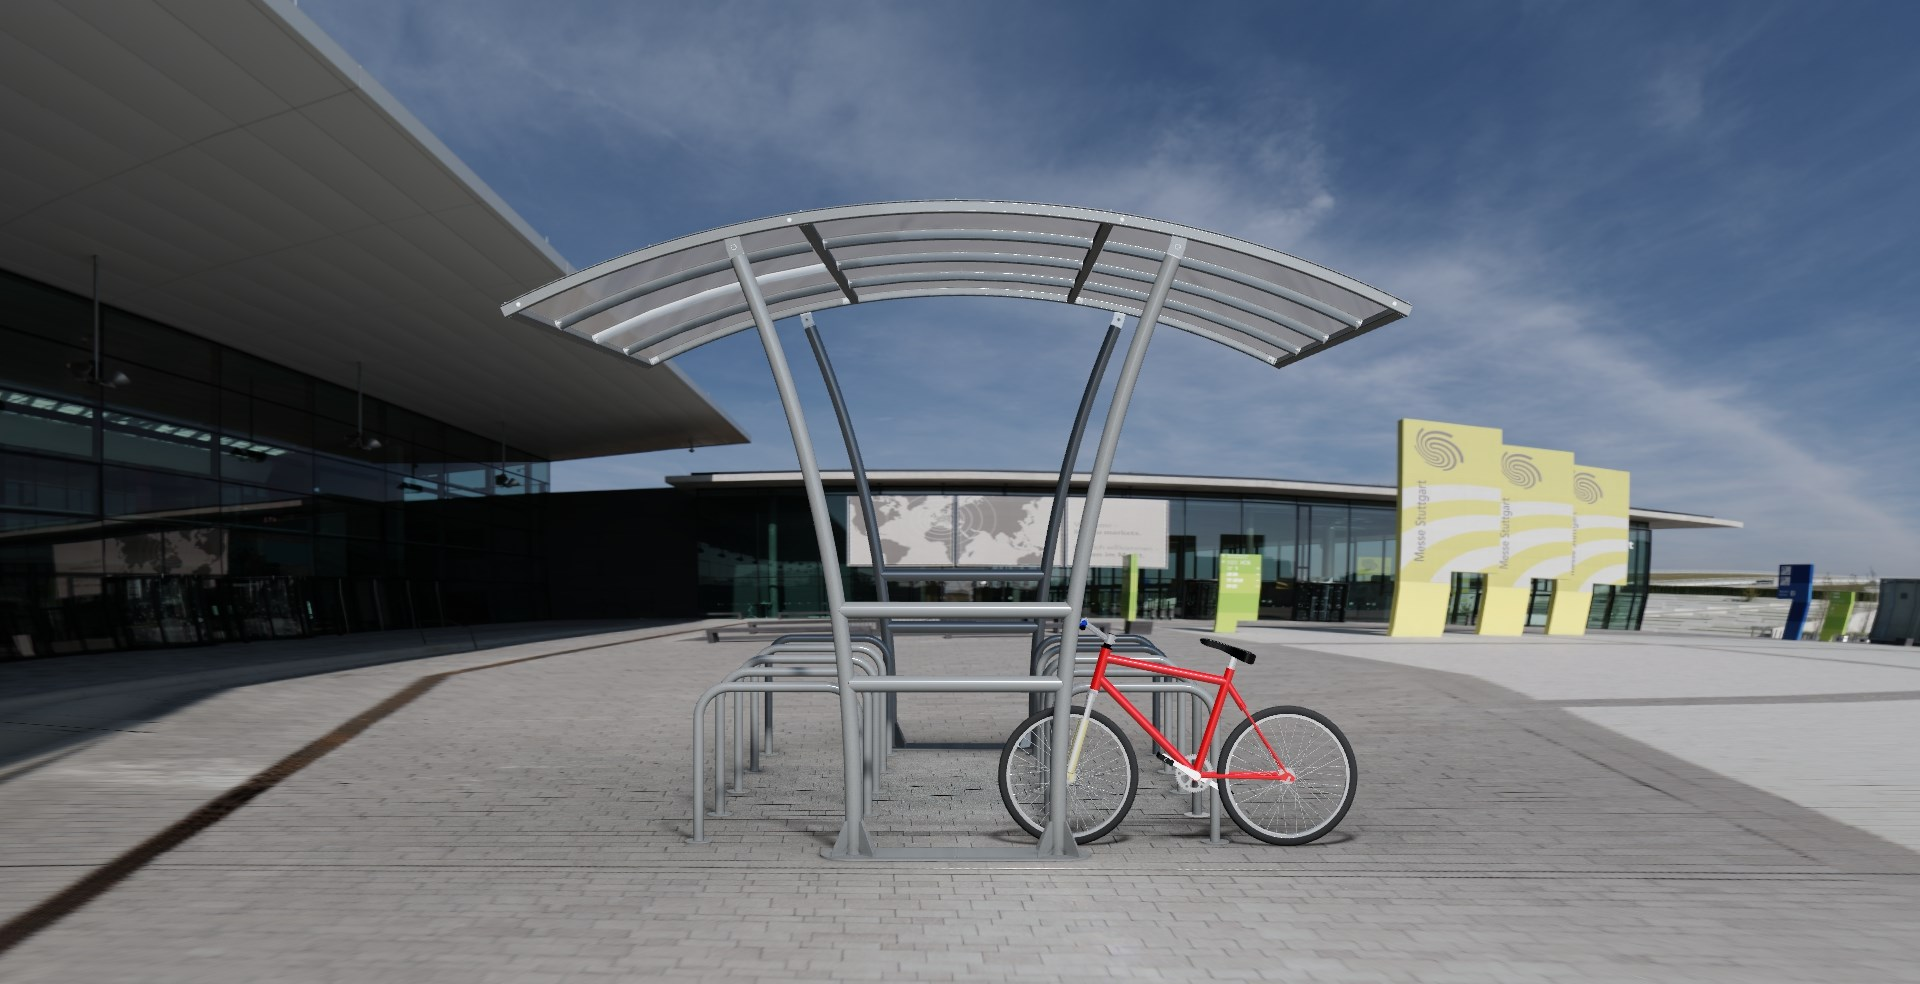 Bowerham Cycle Shelter product image